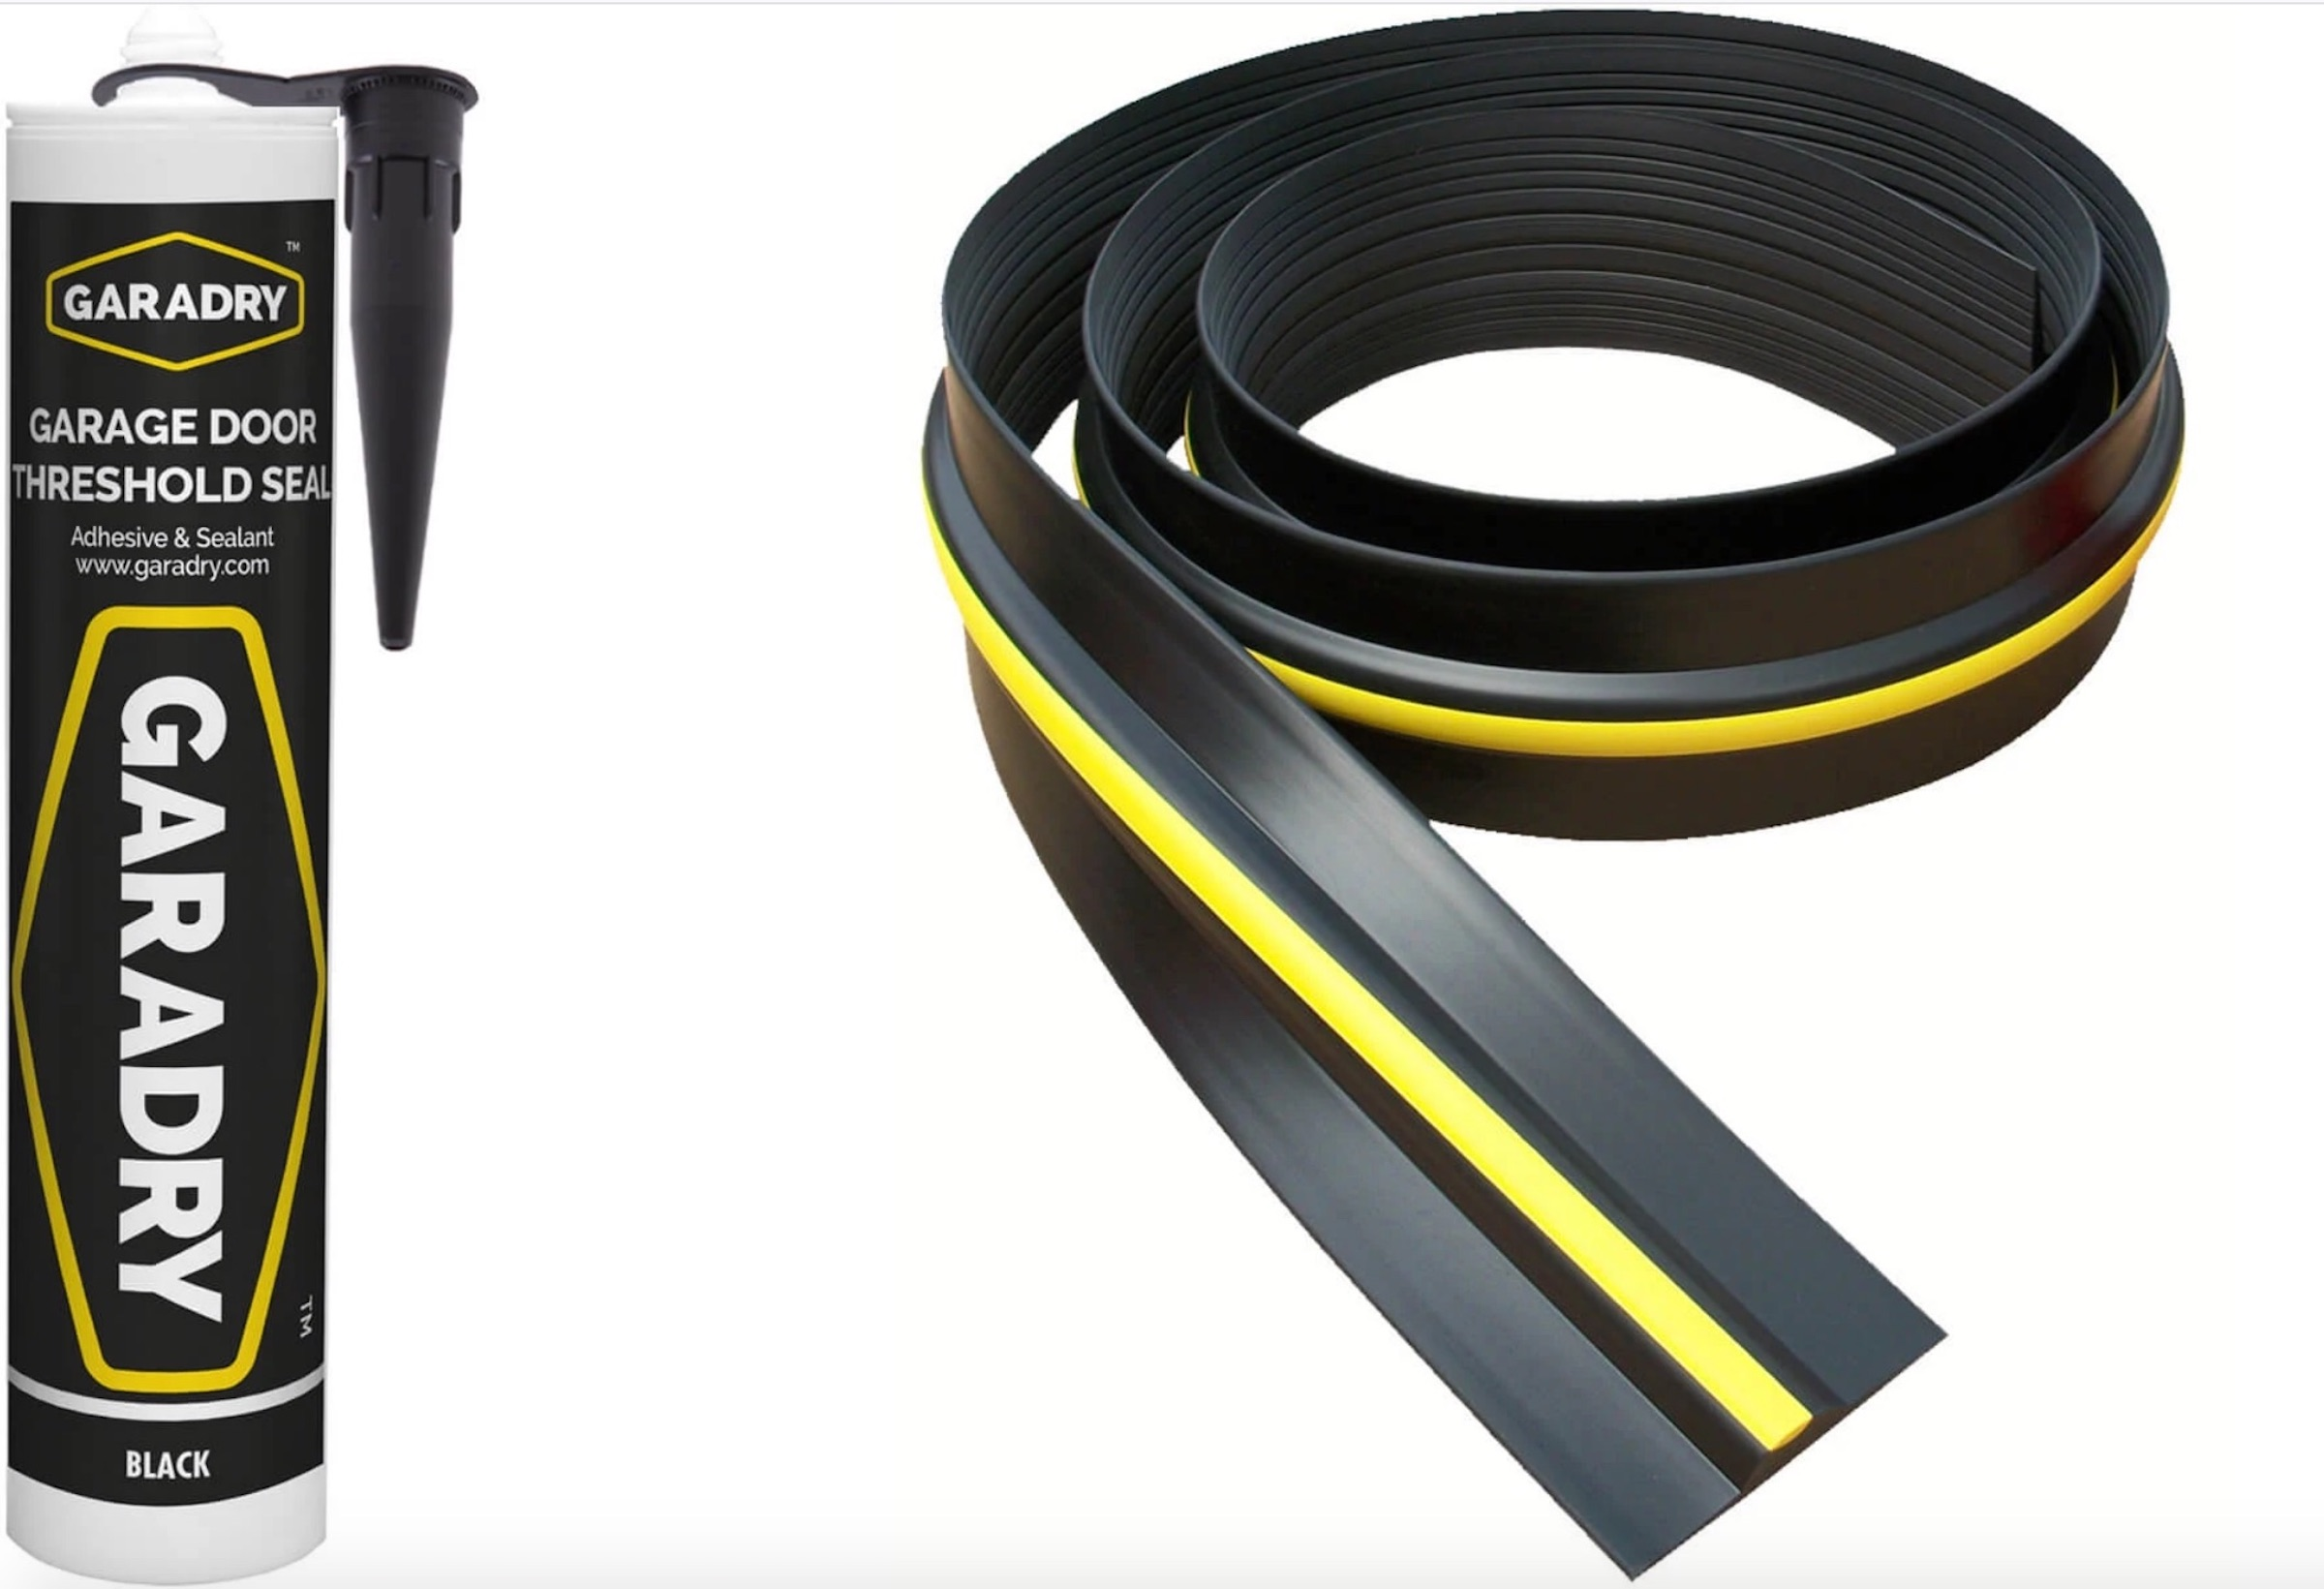 Garage Door Rubber Floor Seal 14'3 4.4m and Adhesive